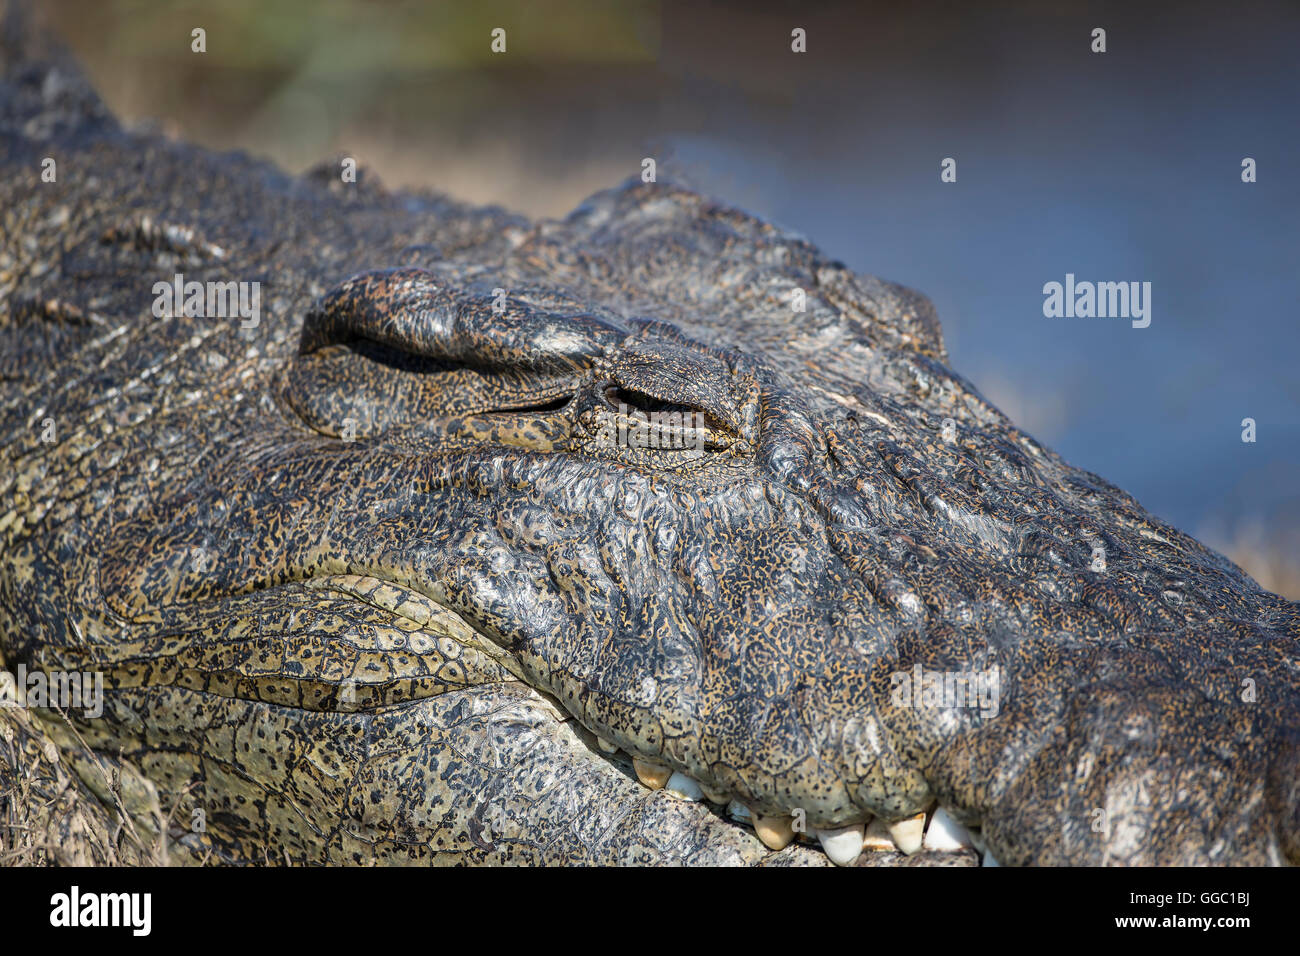 Close up of the head of a Nile crocodile Crocodylus niloticus the second largest reptile in the world - Stock Image